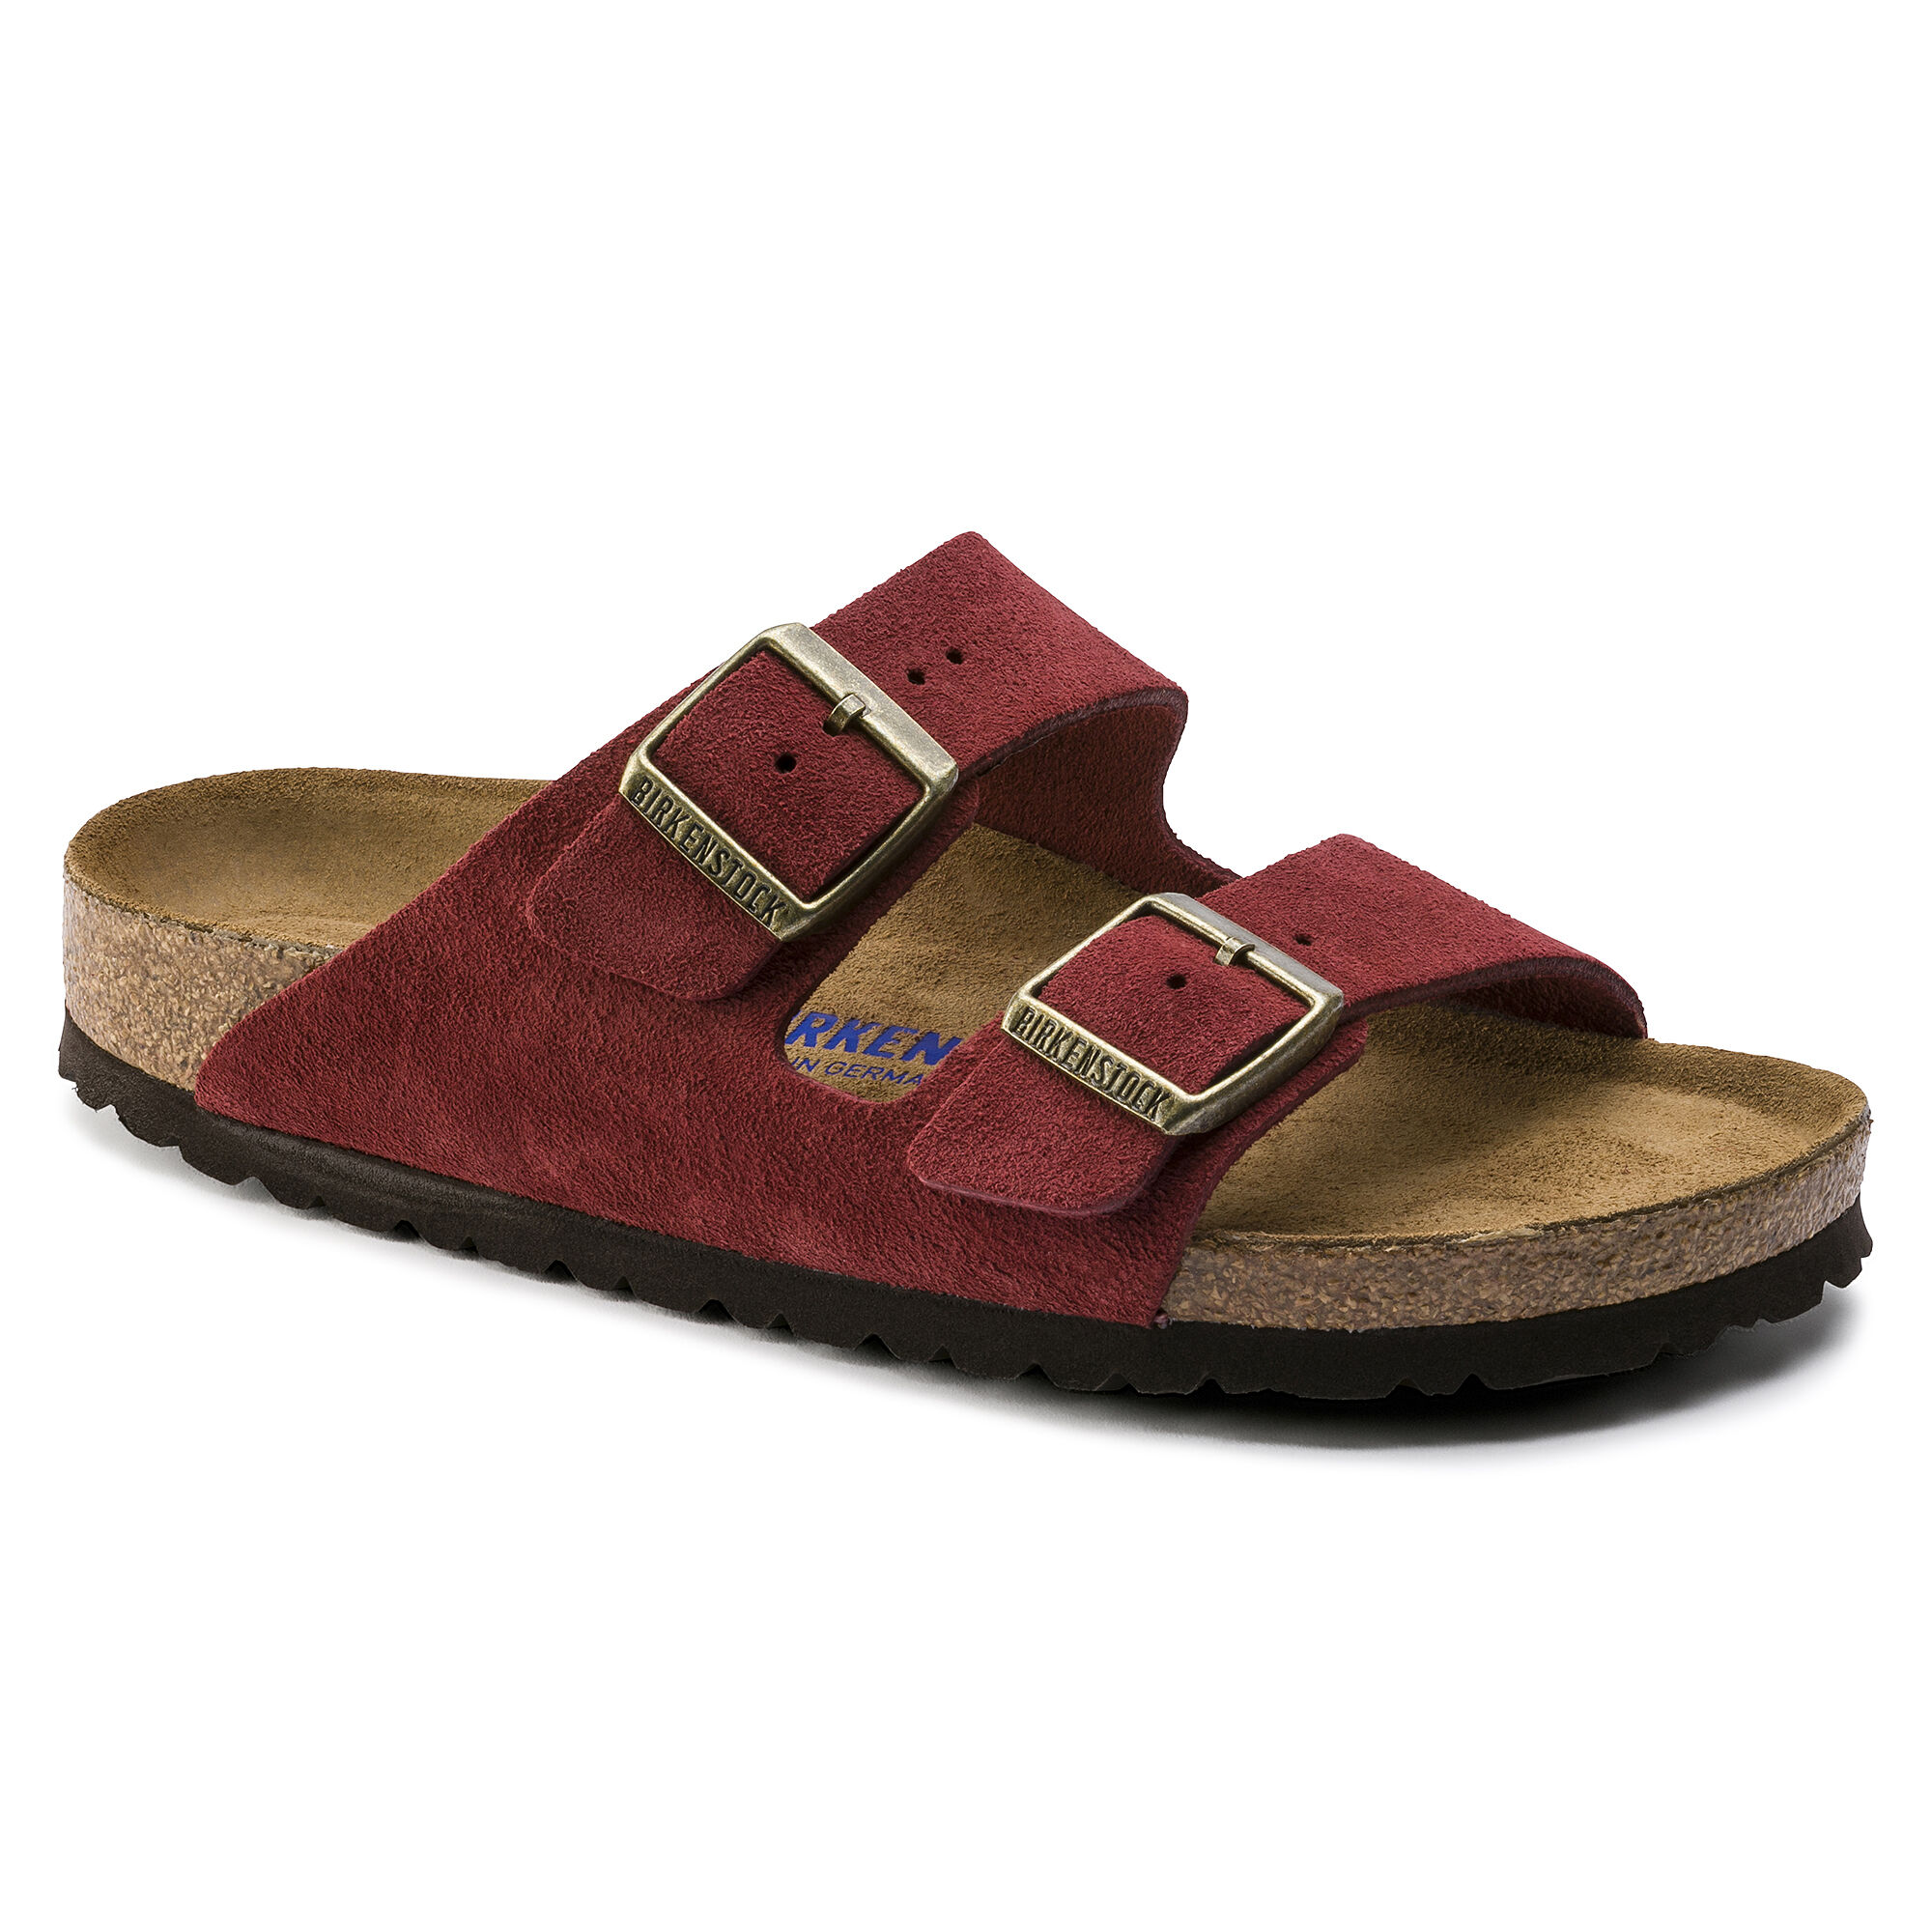 2019 Soft New Birkenstock Boston 2019 Footbed Oiled Leather Germany Brand Slippers Red Pink Black Gray Brown Sandals For Women Men From